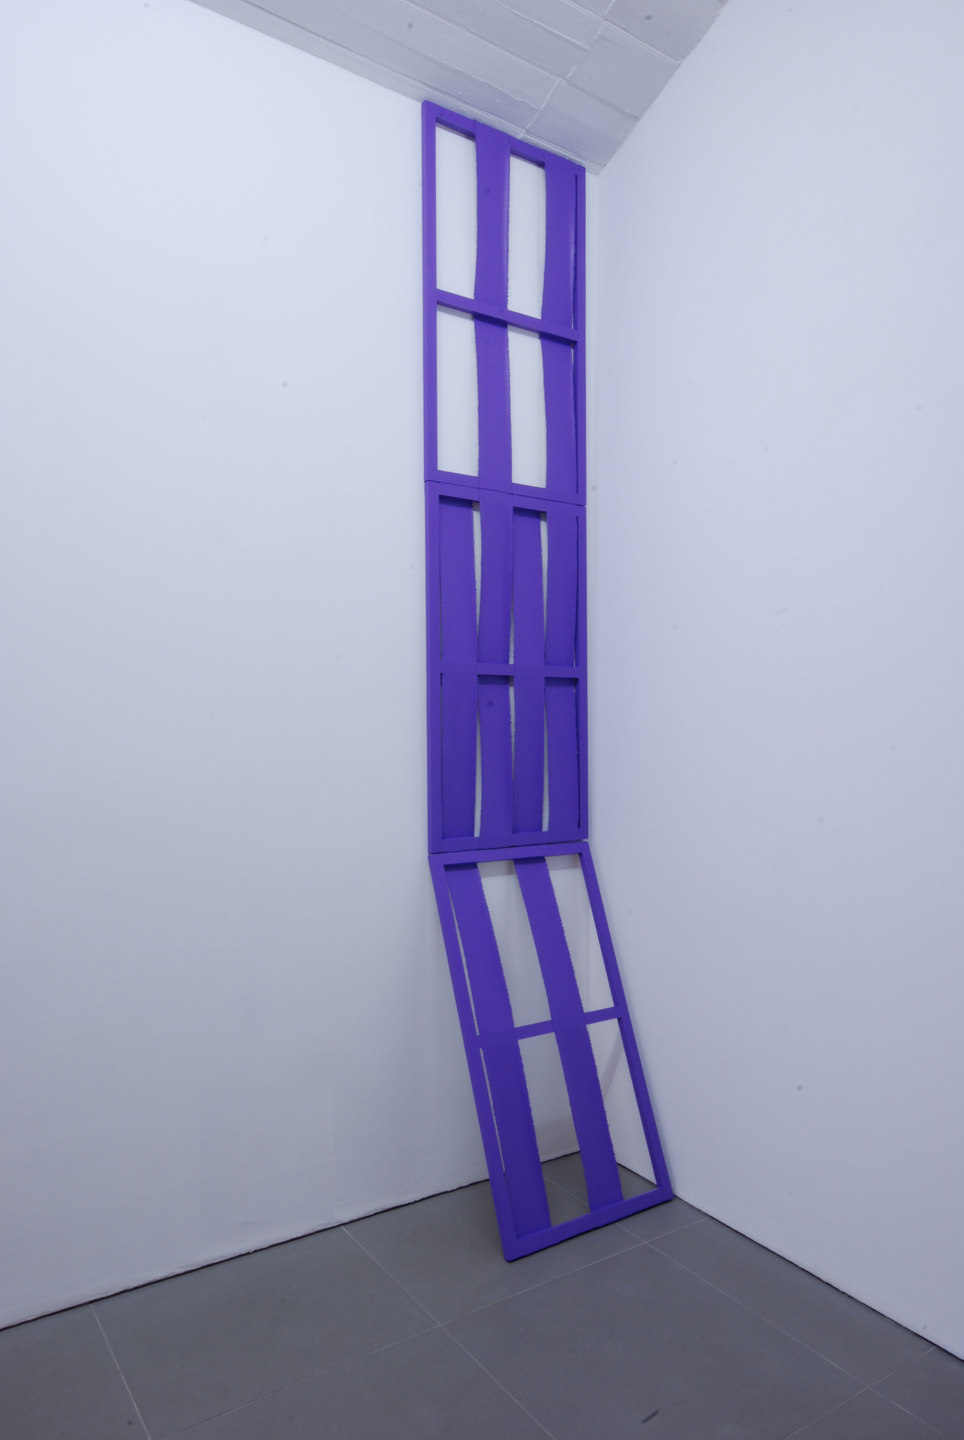 Jessica Warboys, Victory Park Tree Painting, 'Trunk', 2011, wood, canvas, acrylic, 283 x 56 x 36,5 cm, Cell Project Space